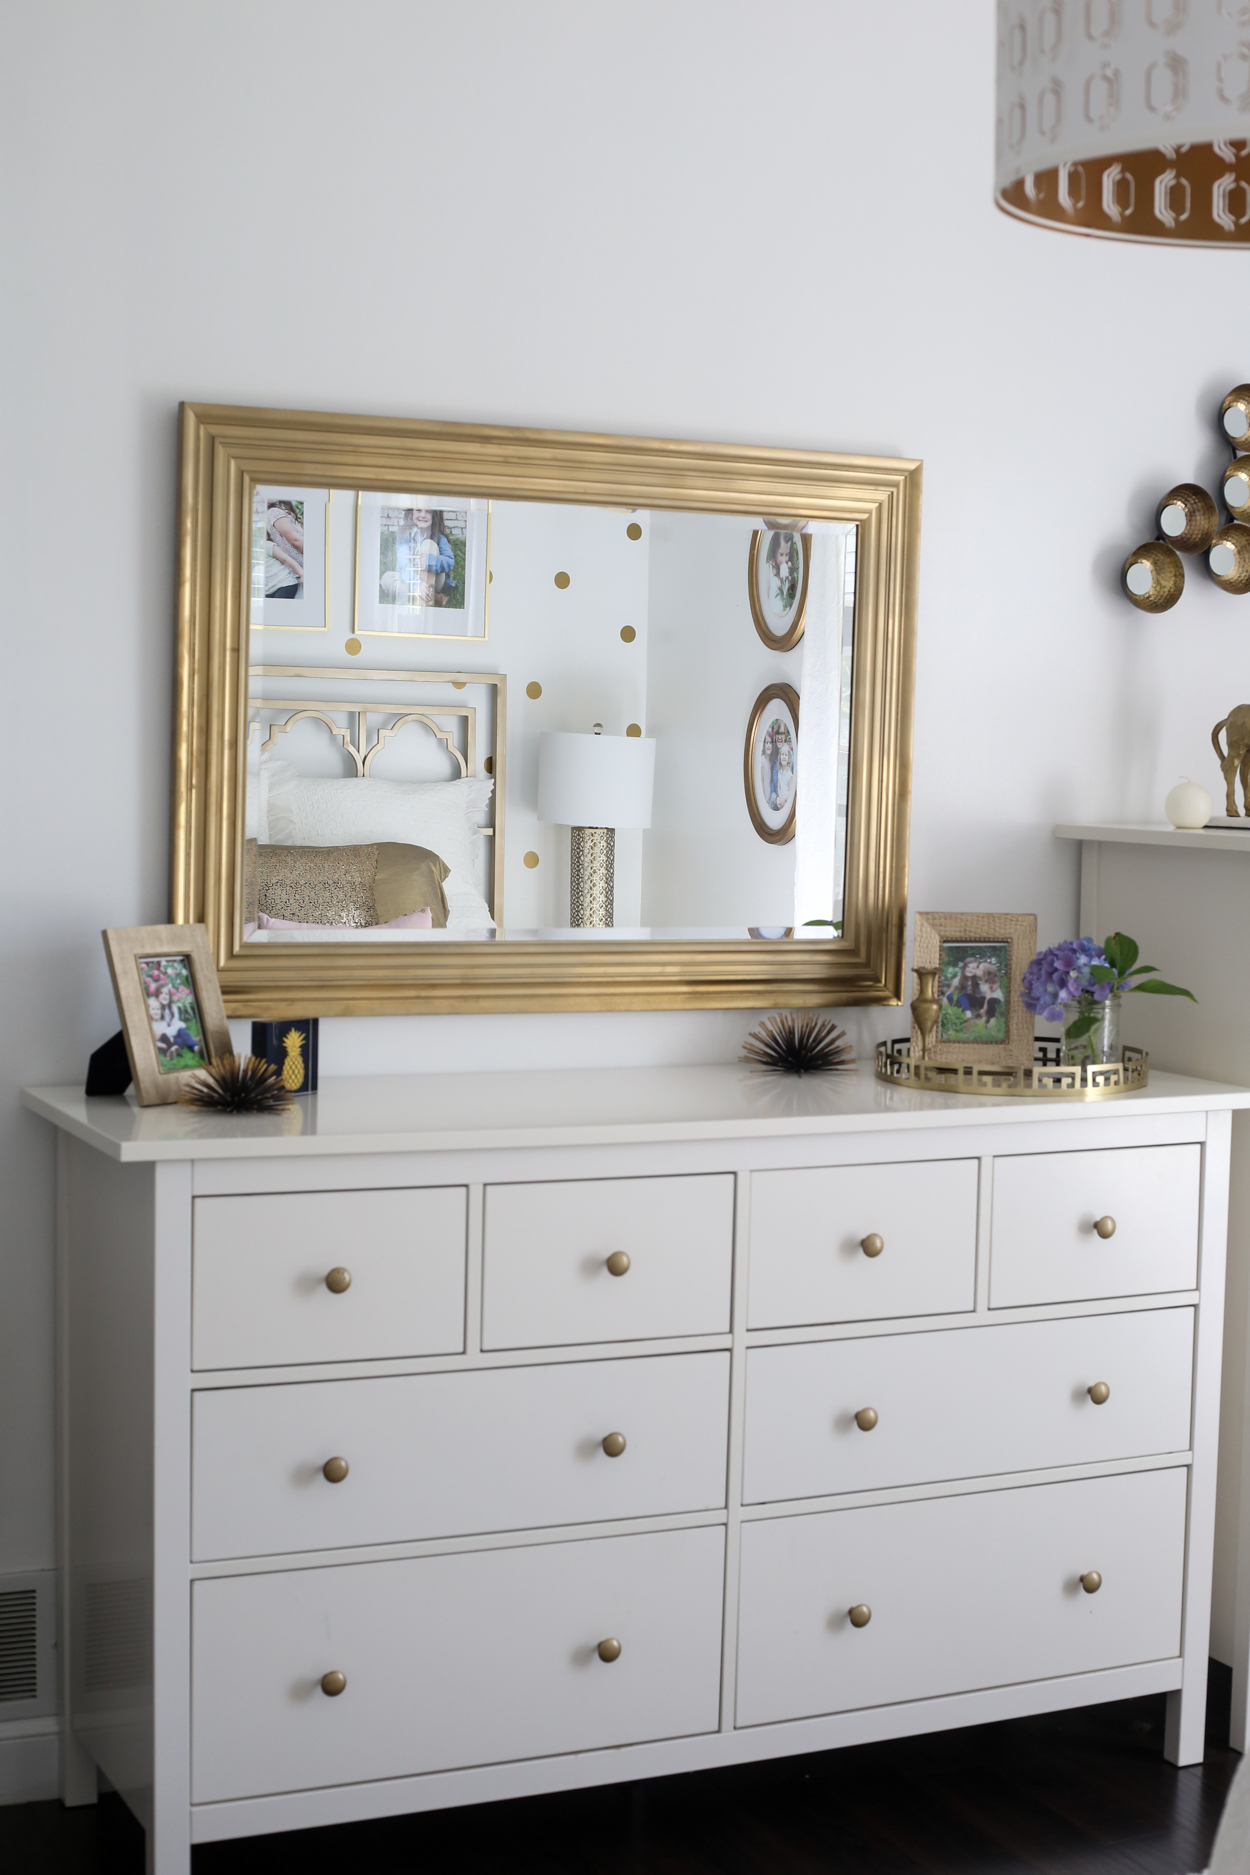 A white dresser topped with gold accents with a gold mirror above it.